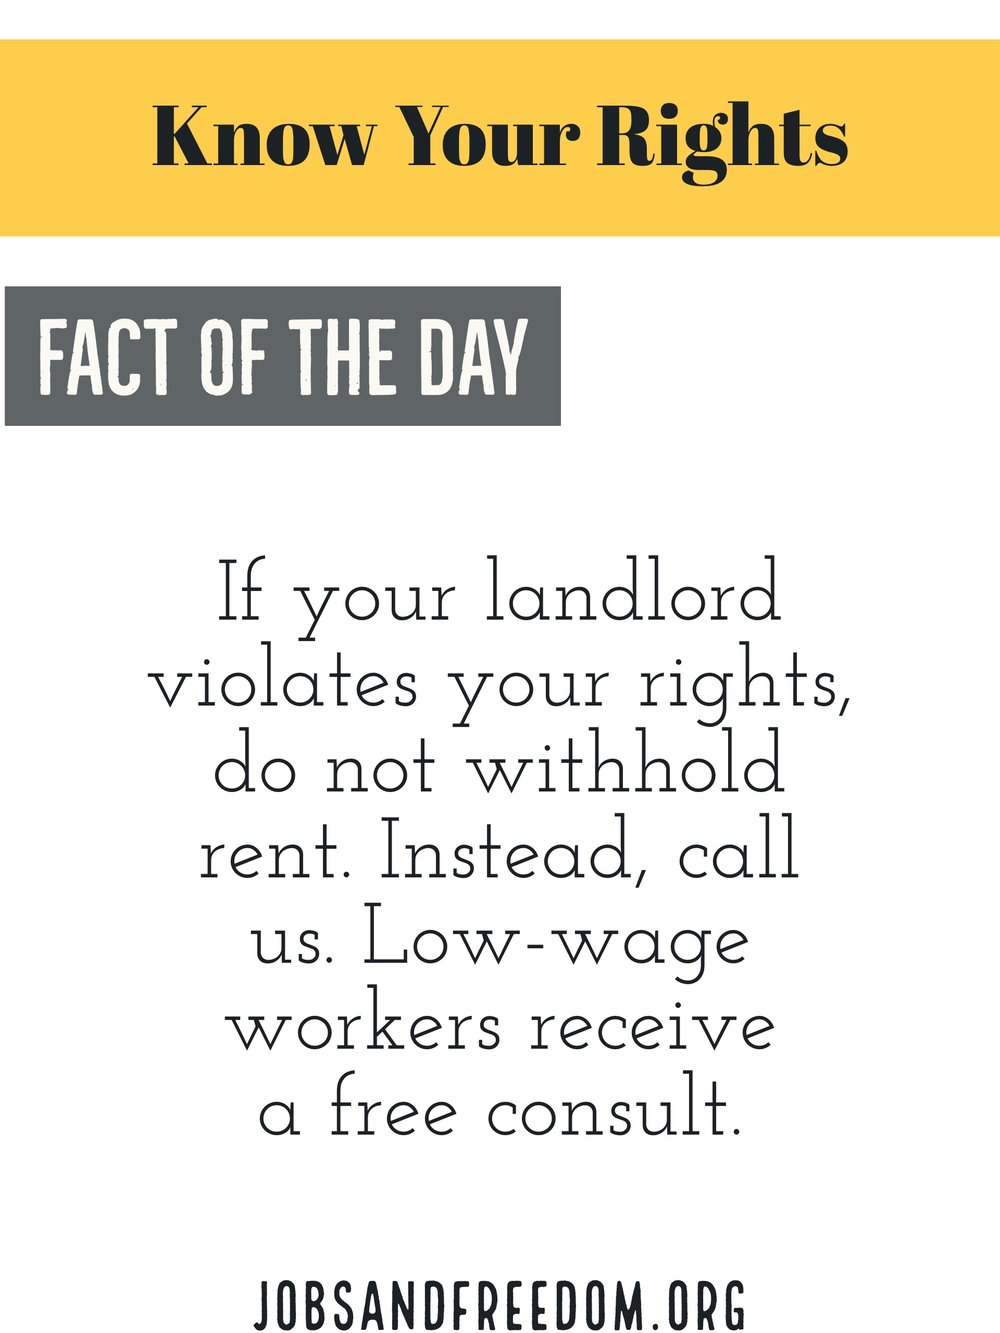 my landlord refuses to fix the heat, can i withhold rent? If your landlord violates your rights, do not withhold rent. Instead,call us. Low-wage workers may call us for free consult.